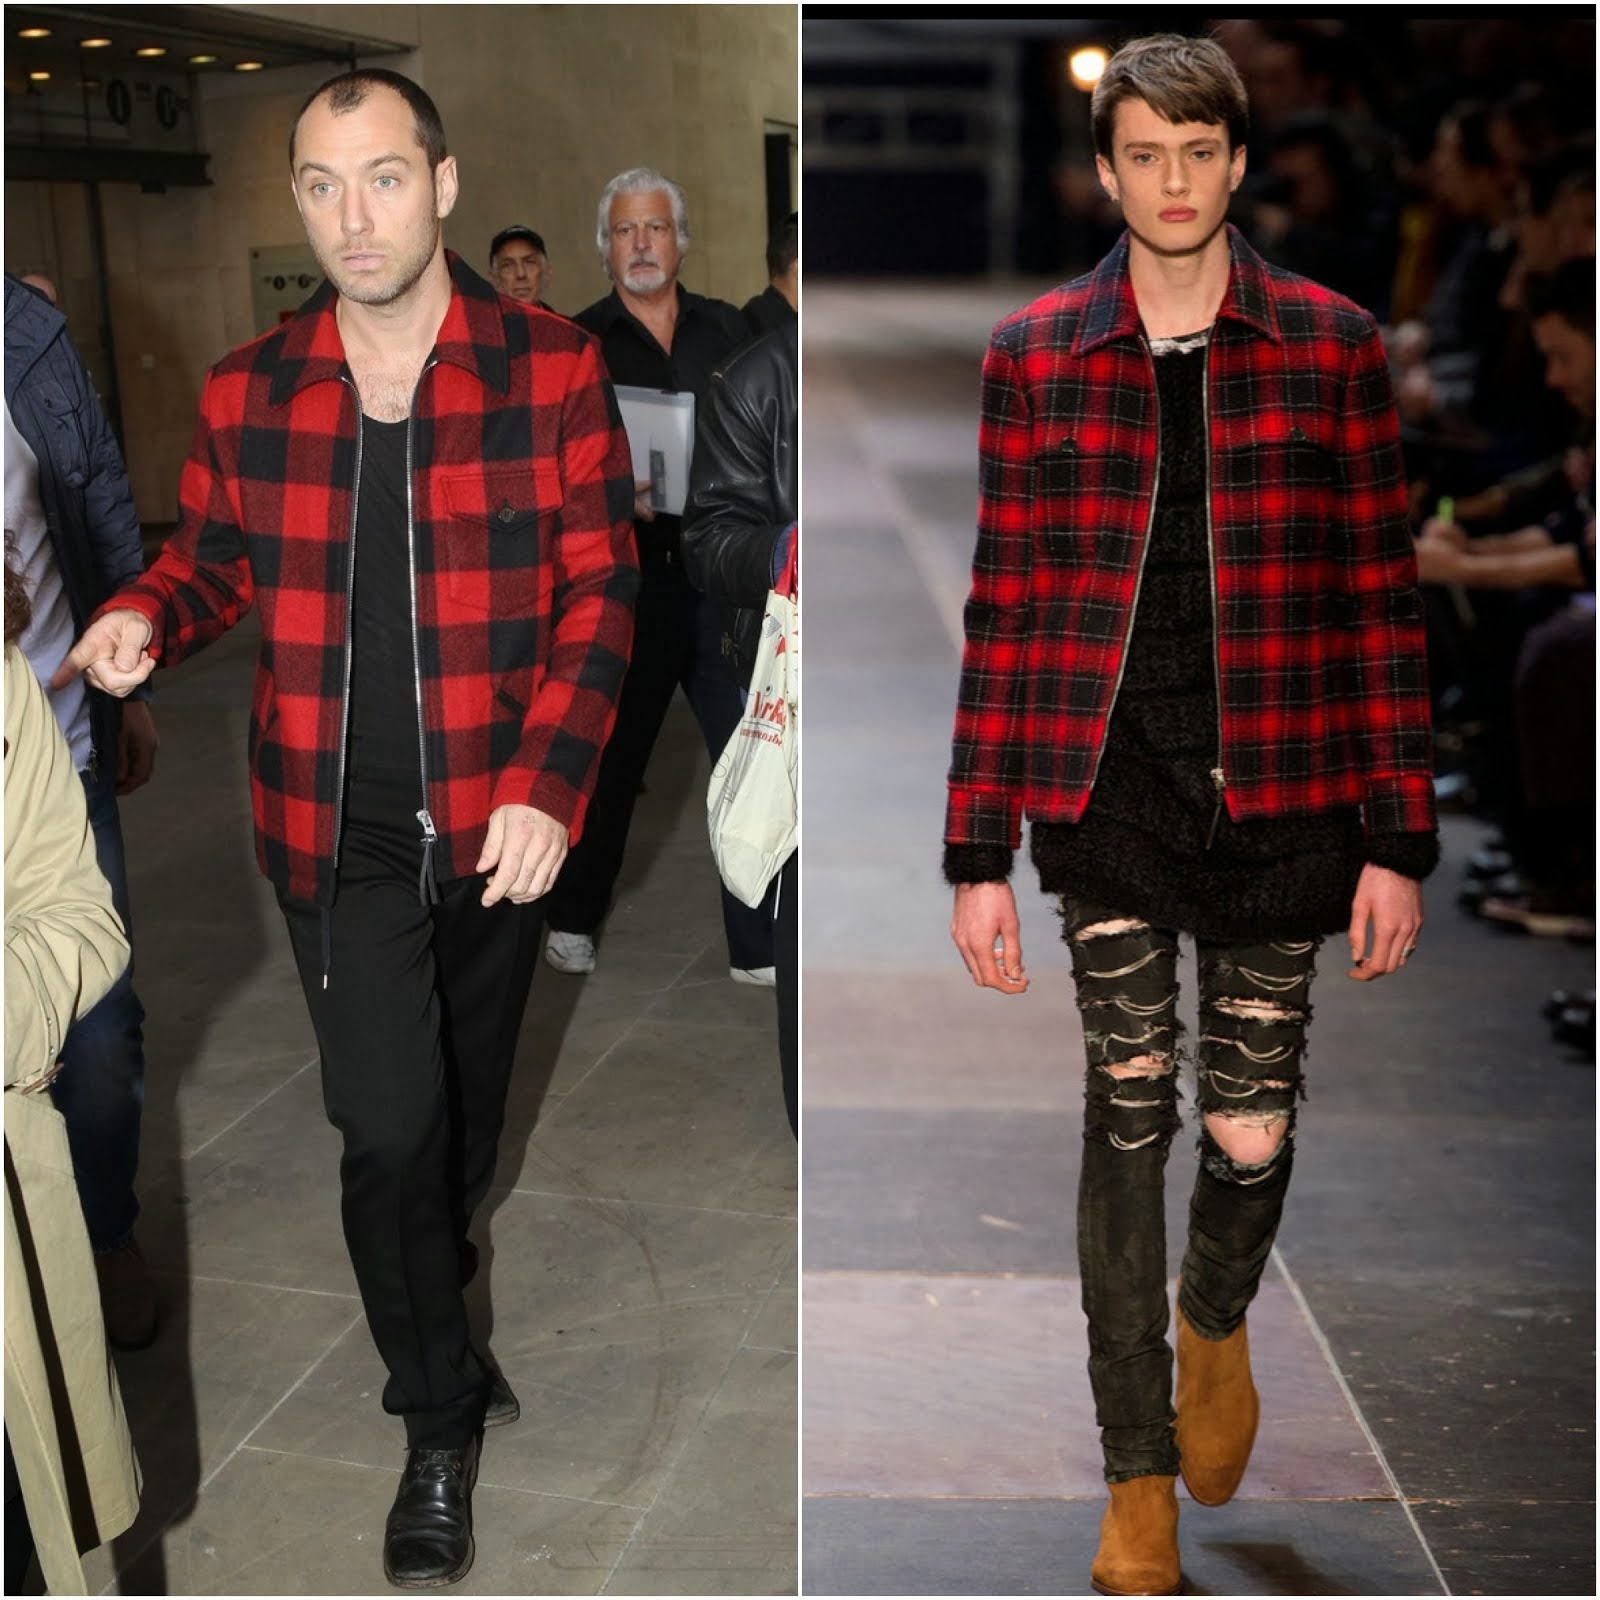 00O00 Menswear Blog: Jude Law in Saint Laurent red check lumber jacket - BBC 1 Studios